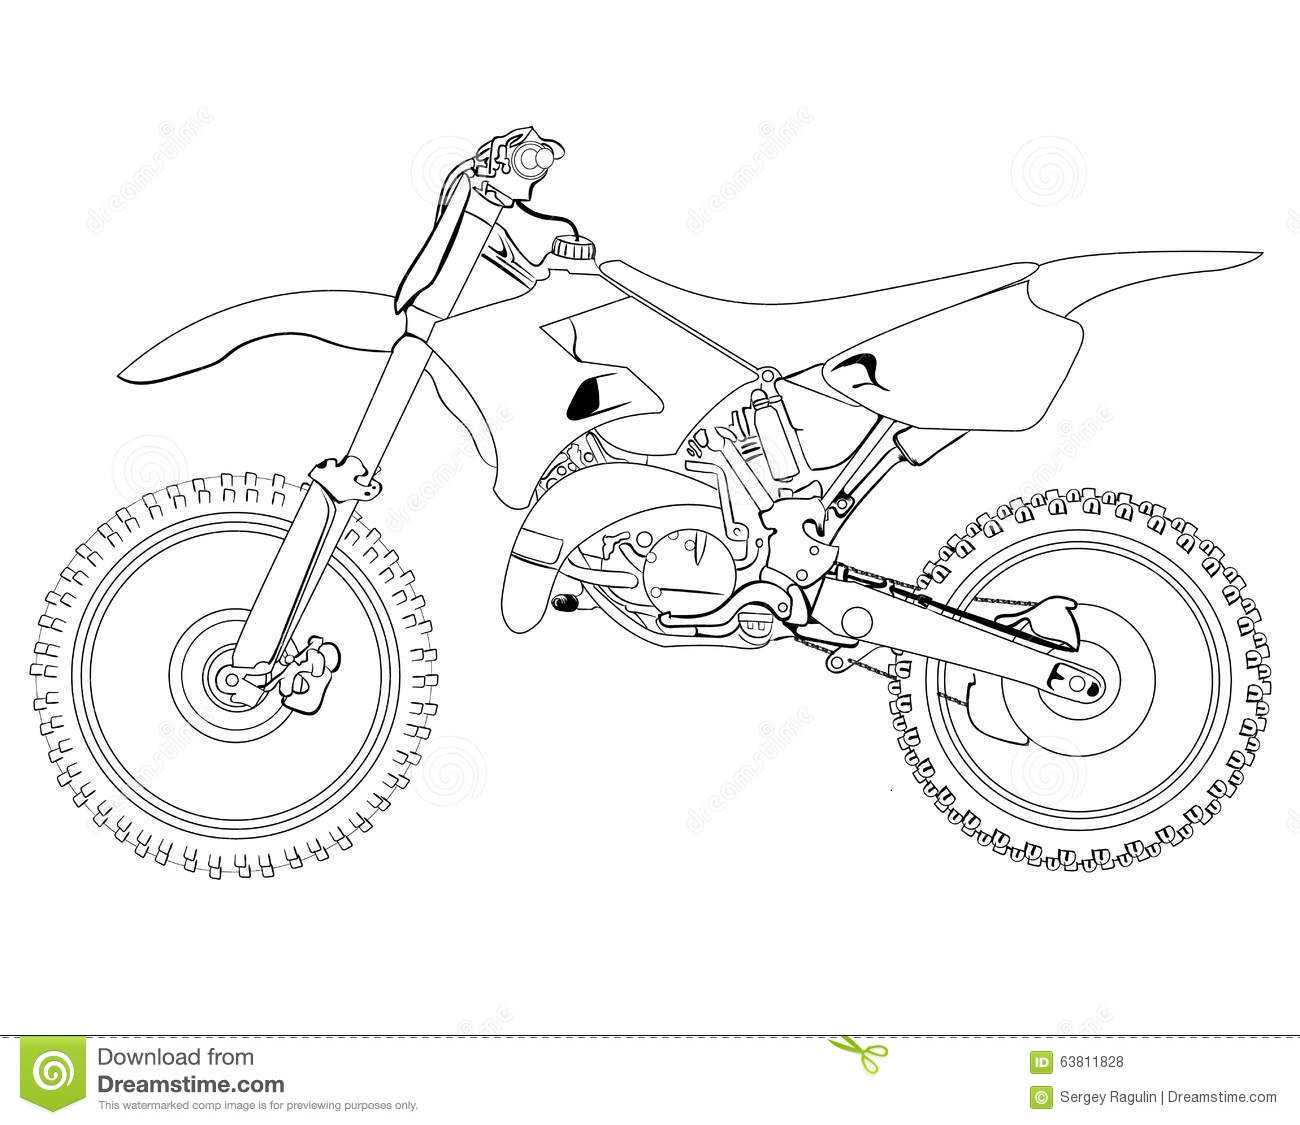 Dirt bike sketch stock photo. Image of headlight